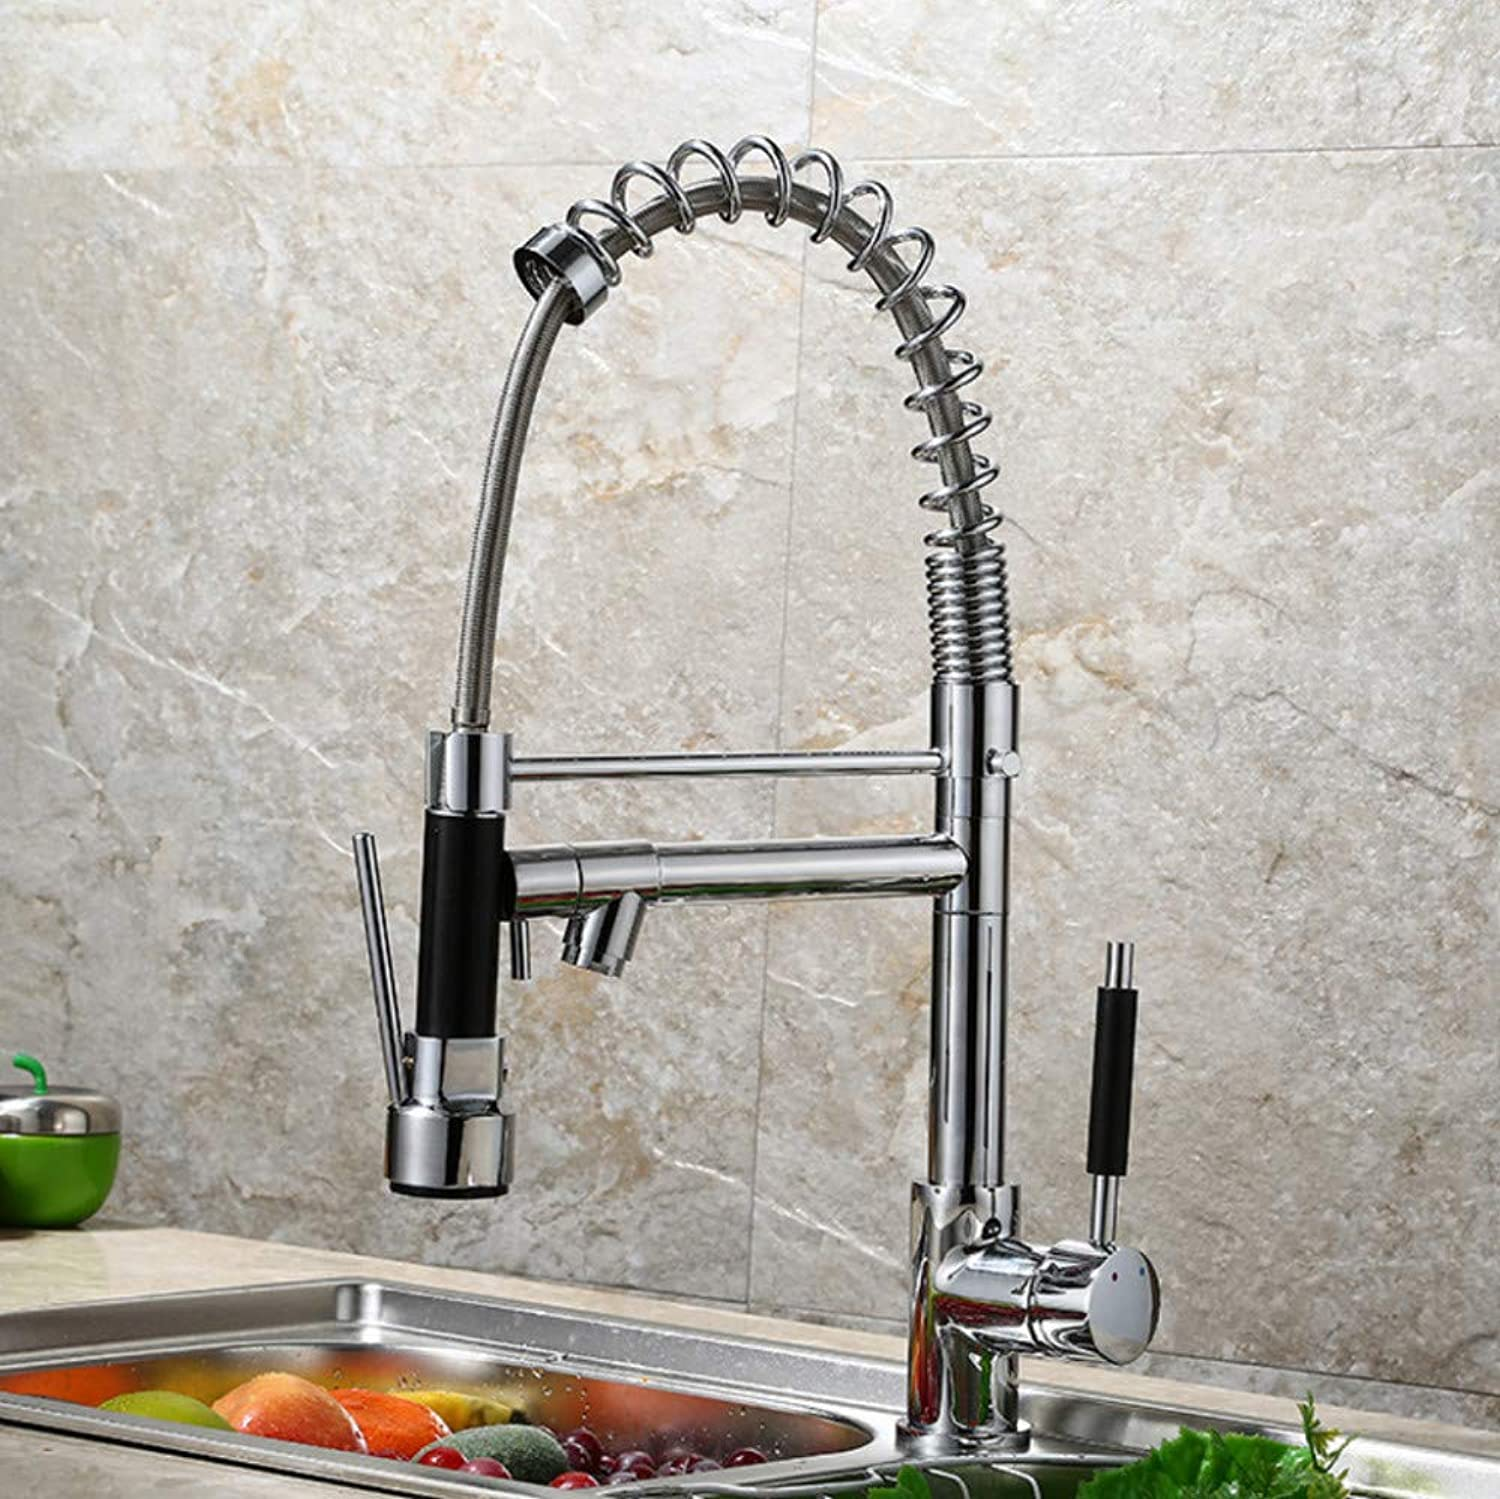 Faucet Copper Brushed Kitchen Faucet Double greenical Sink Spring hot and Cold Kitchen Mixing Faucet